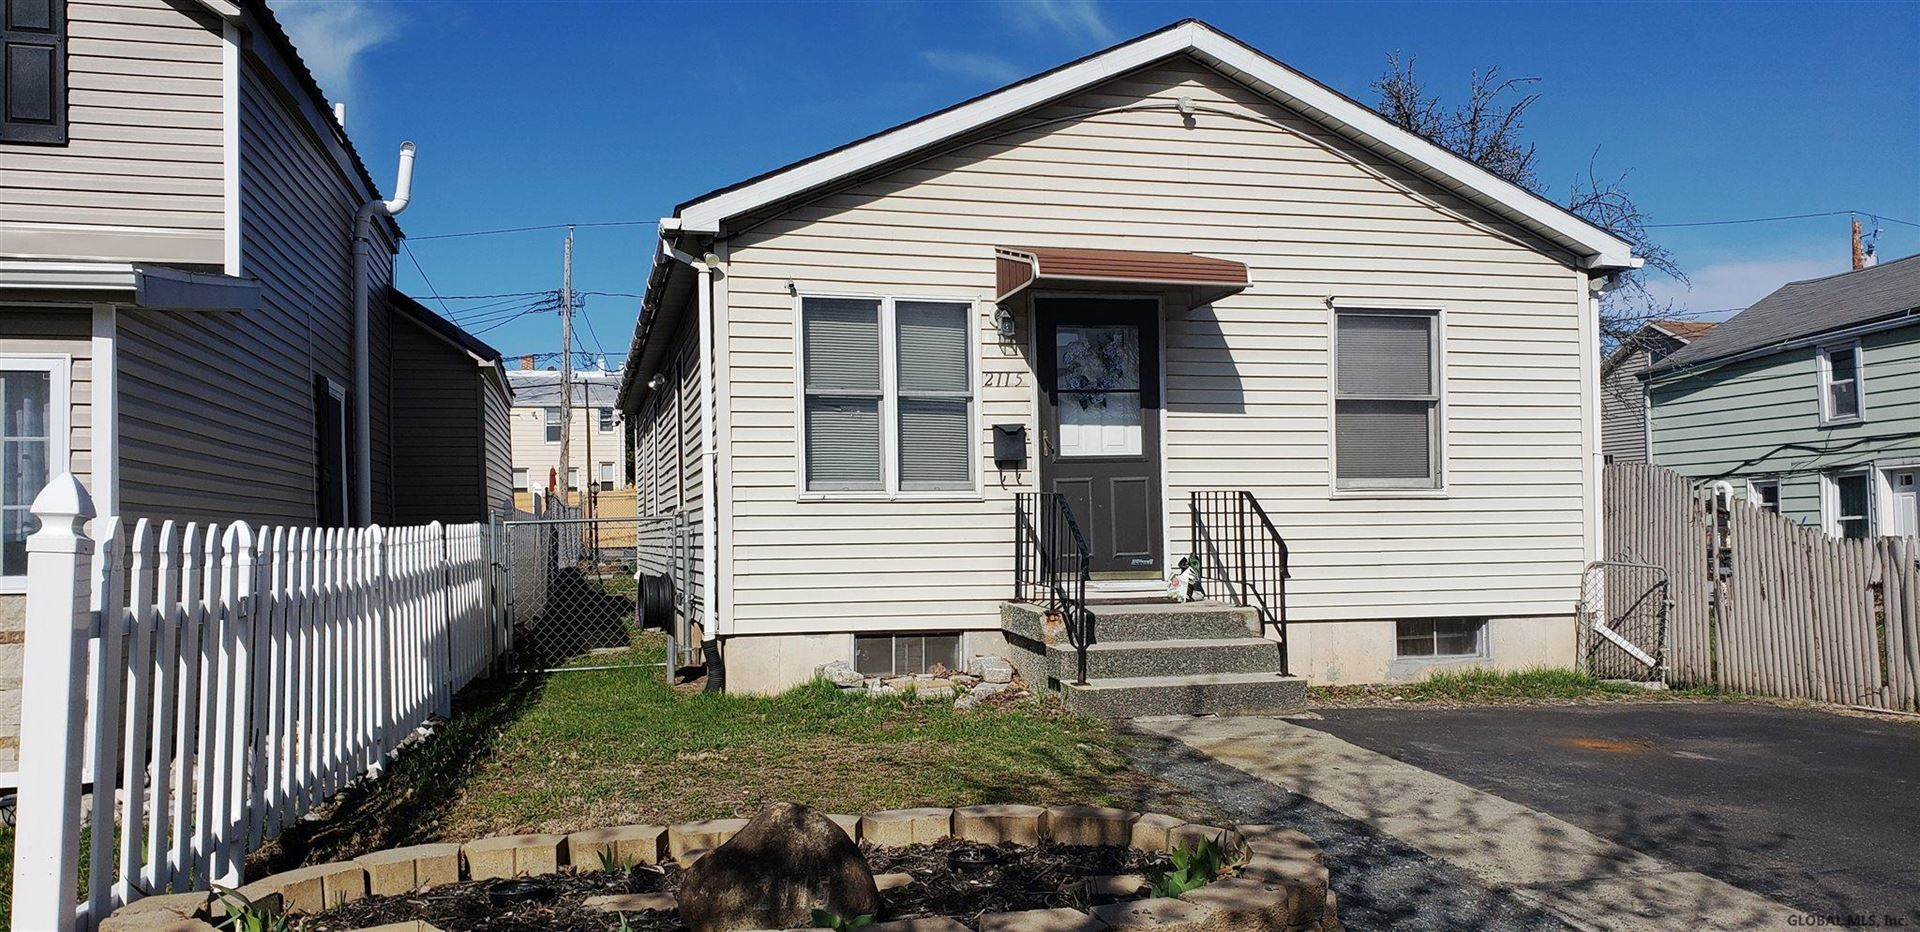 2115 2ND AV, Watervliet, NY 12189 - #: 202115404